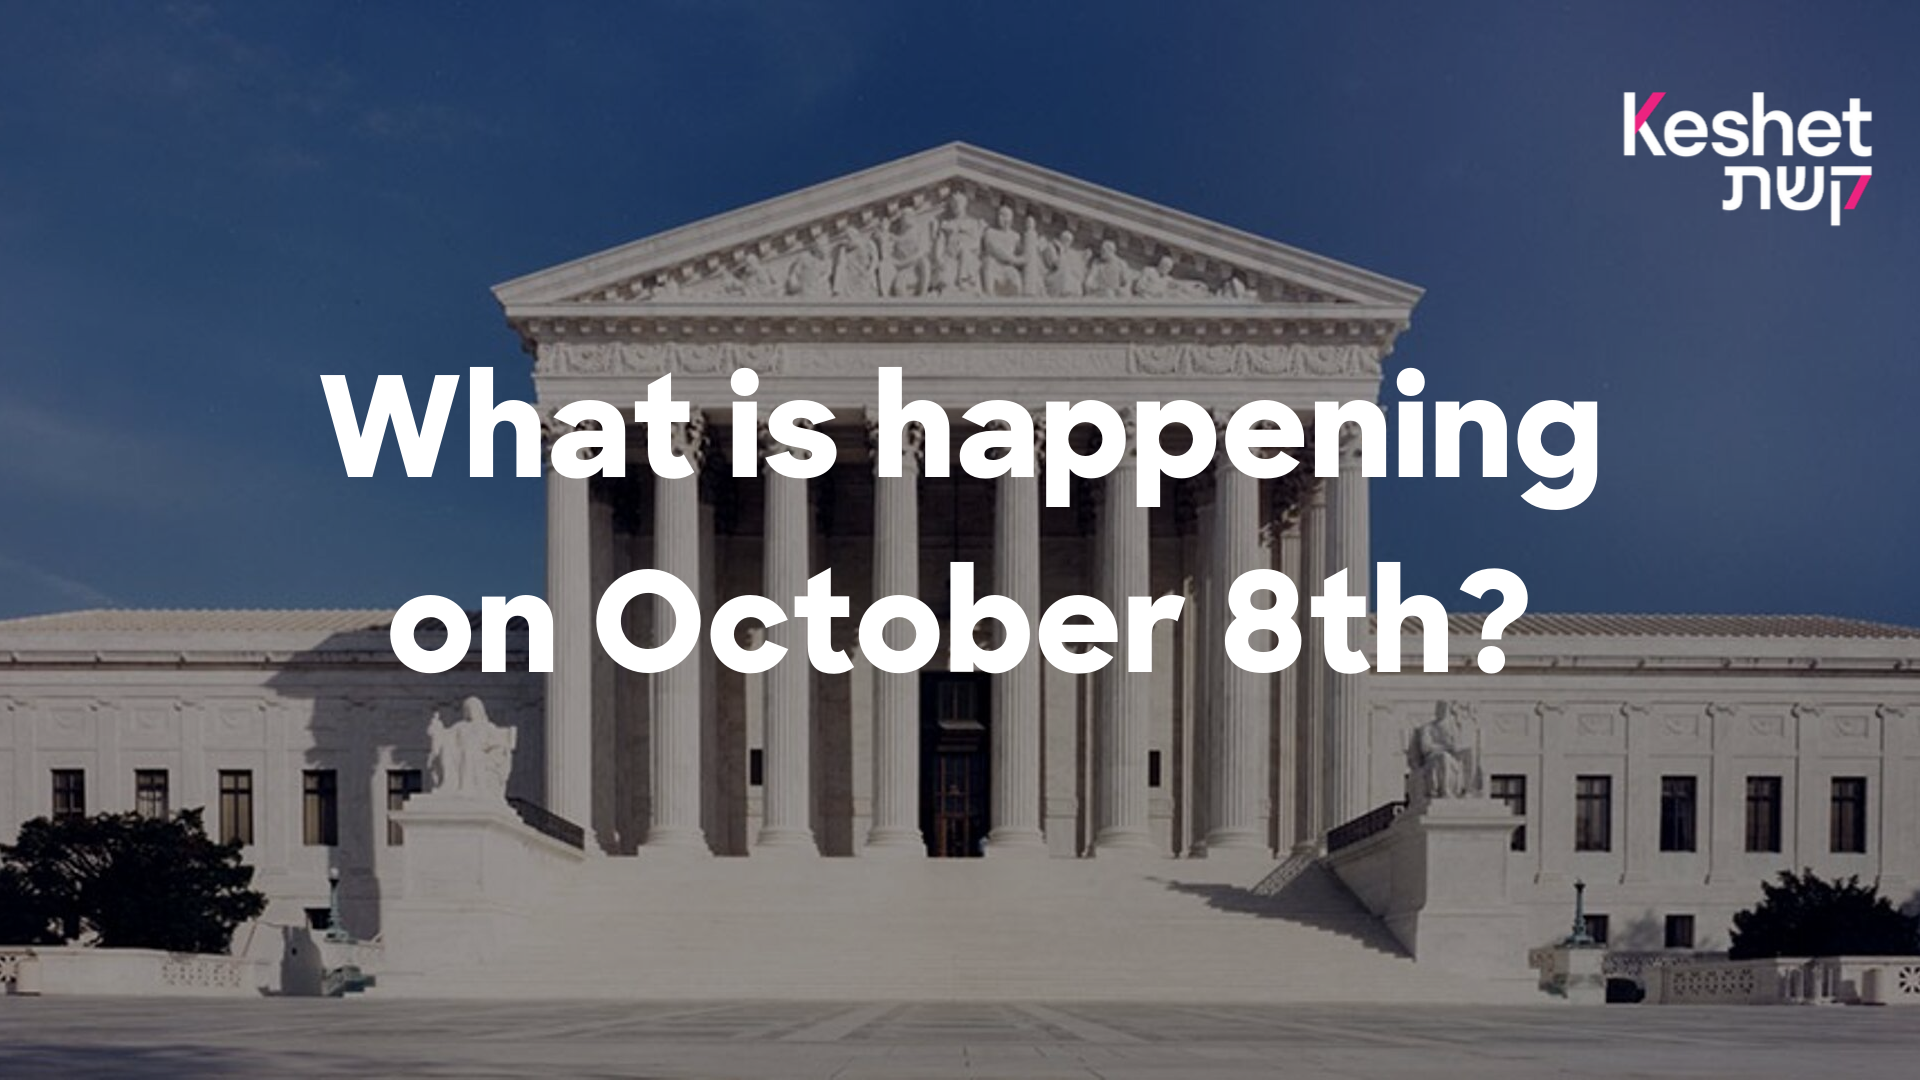 What is happening on October 8th?